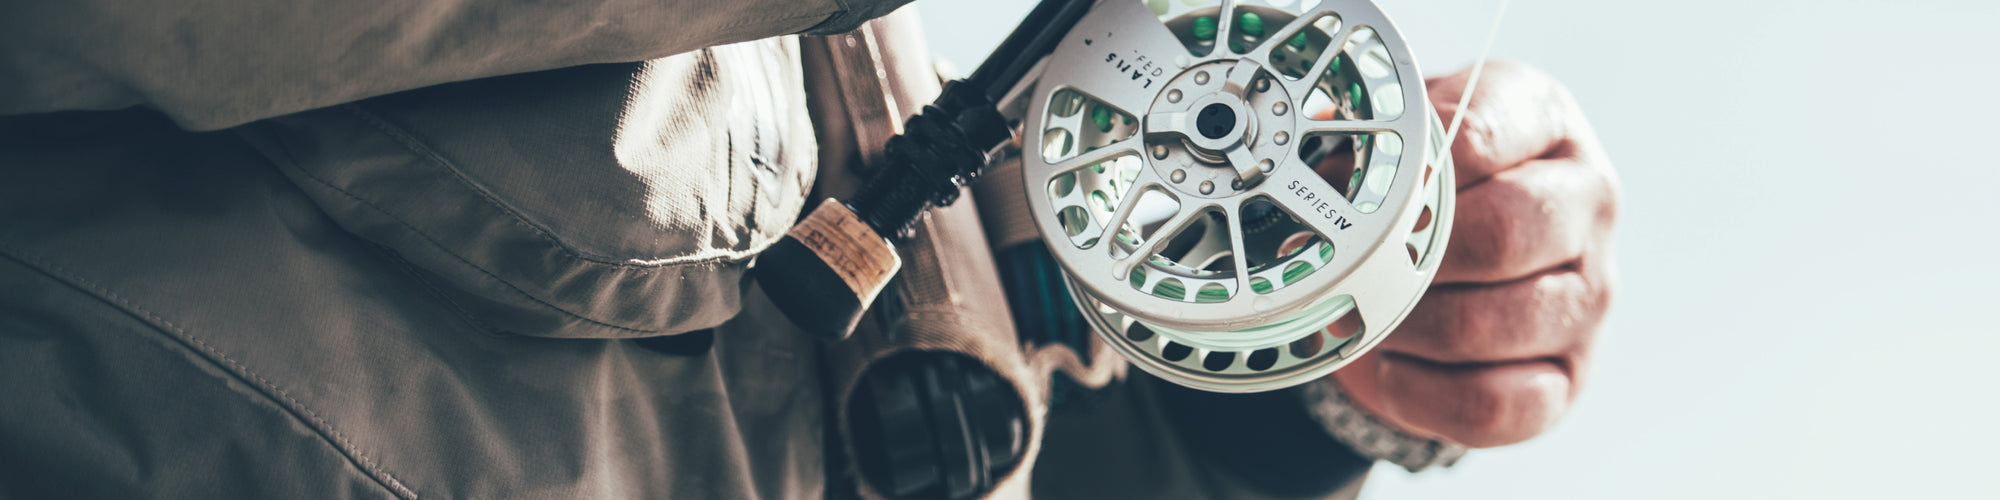 Carretes FlyFishing